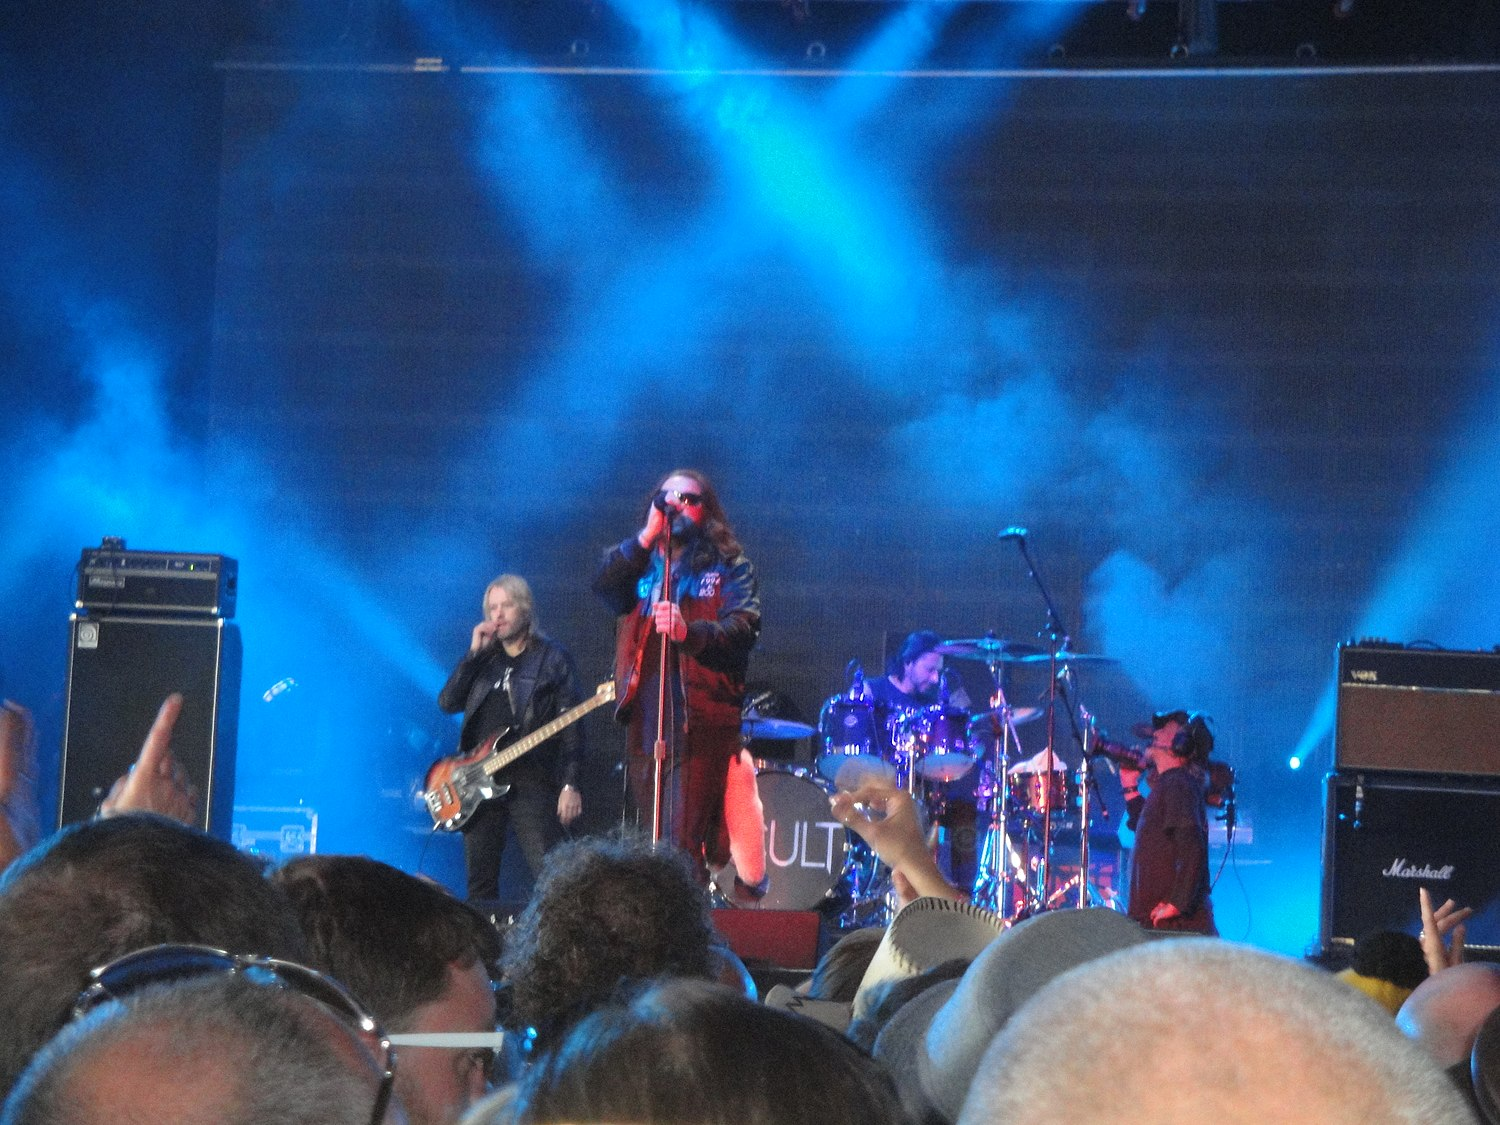 The_Cult_performing_at_Isle_of_Wight_Festival_2011.JPG